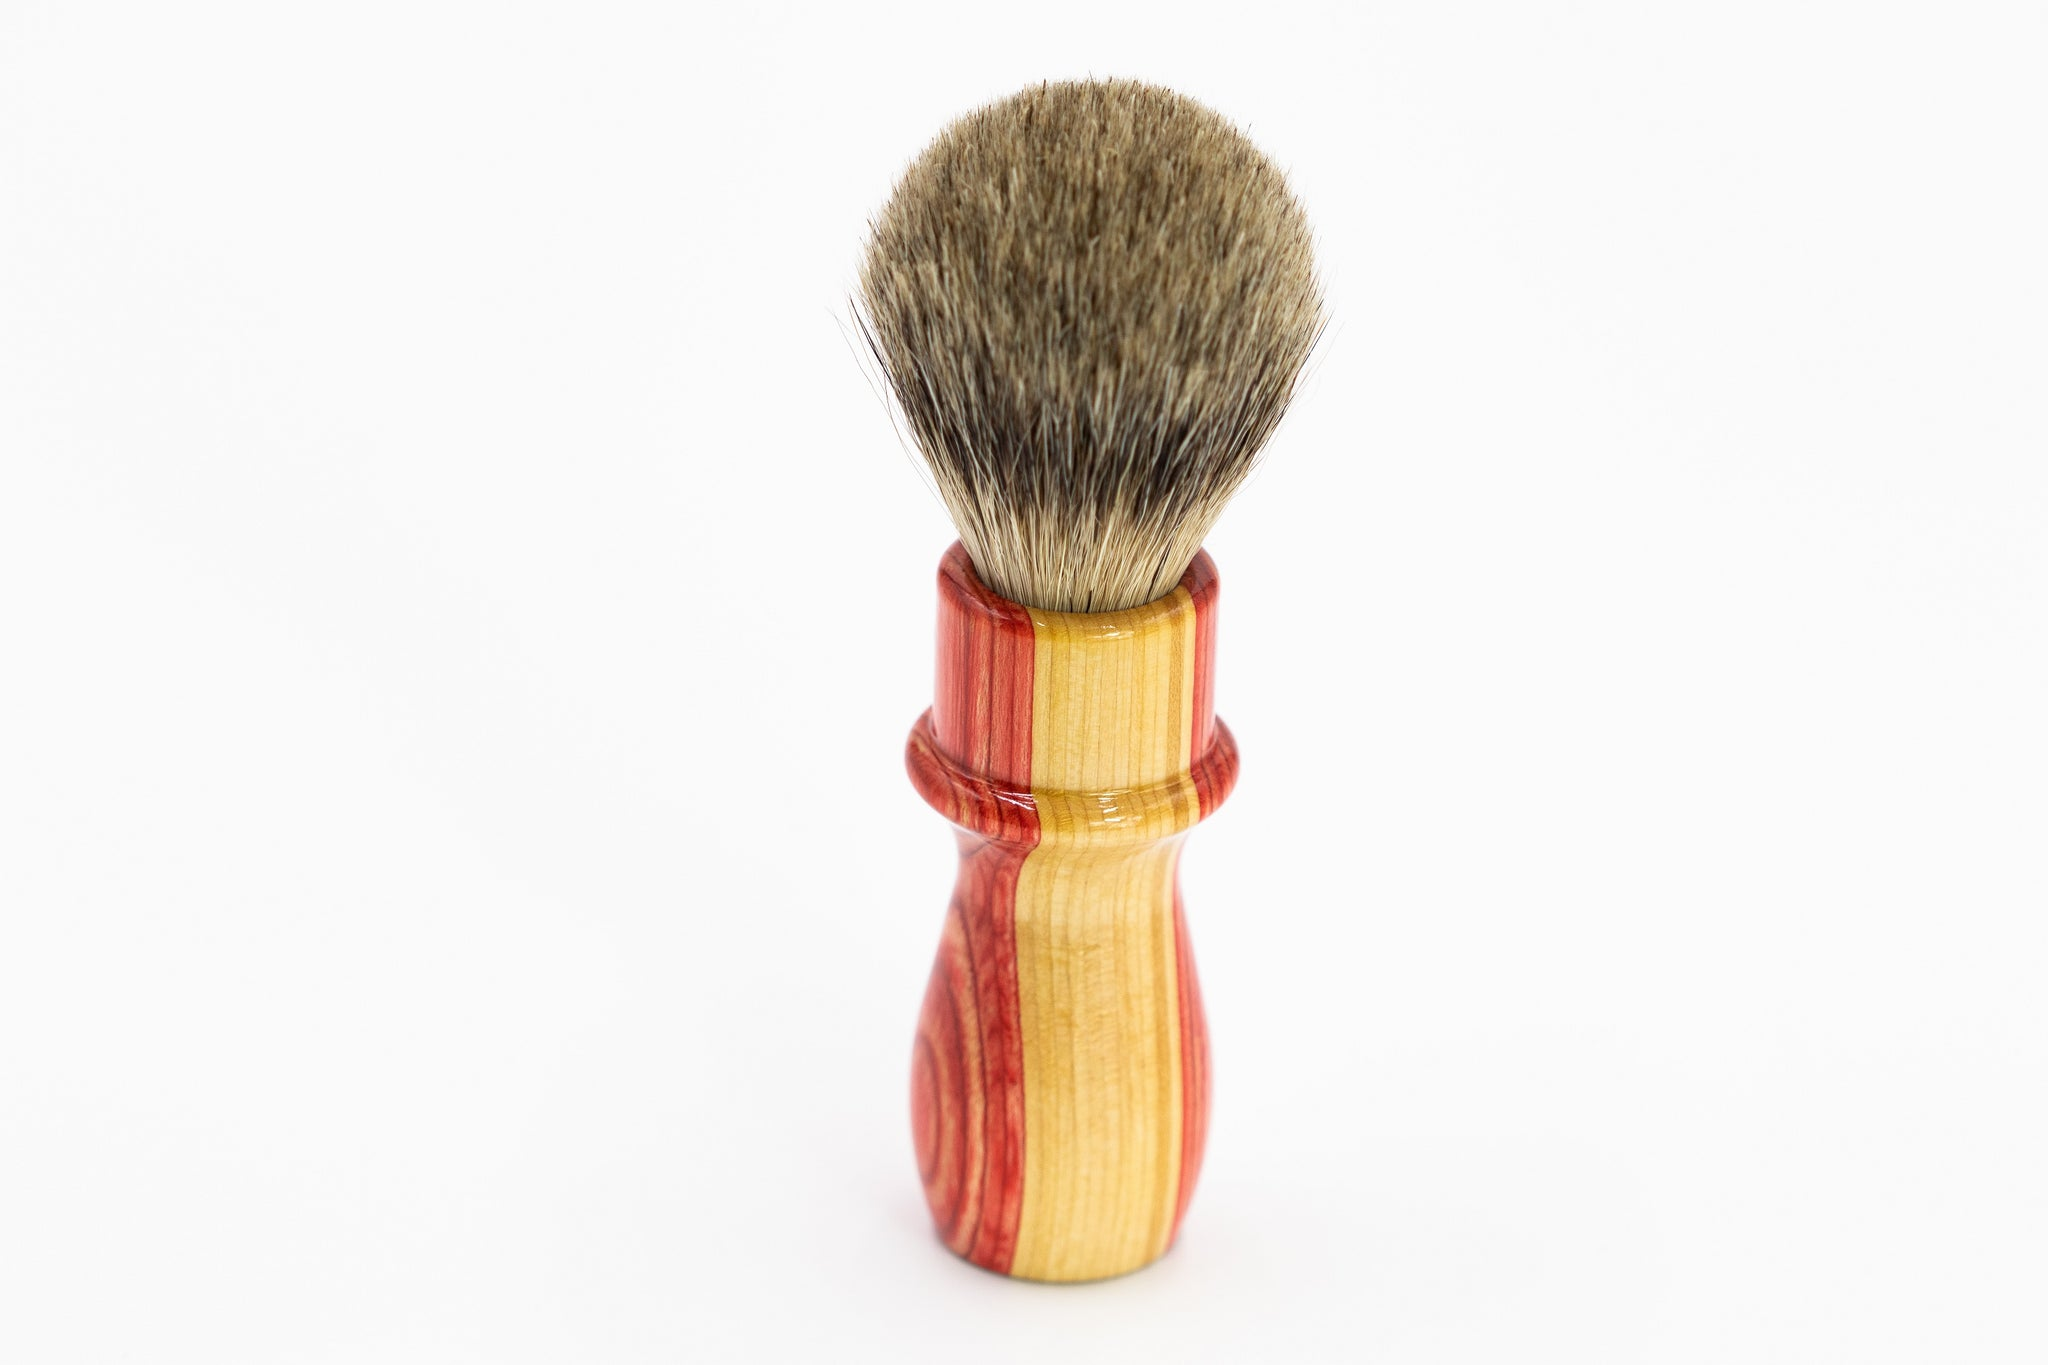 'Canadian' Skate Maple Shaving Brush